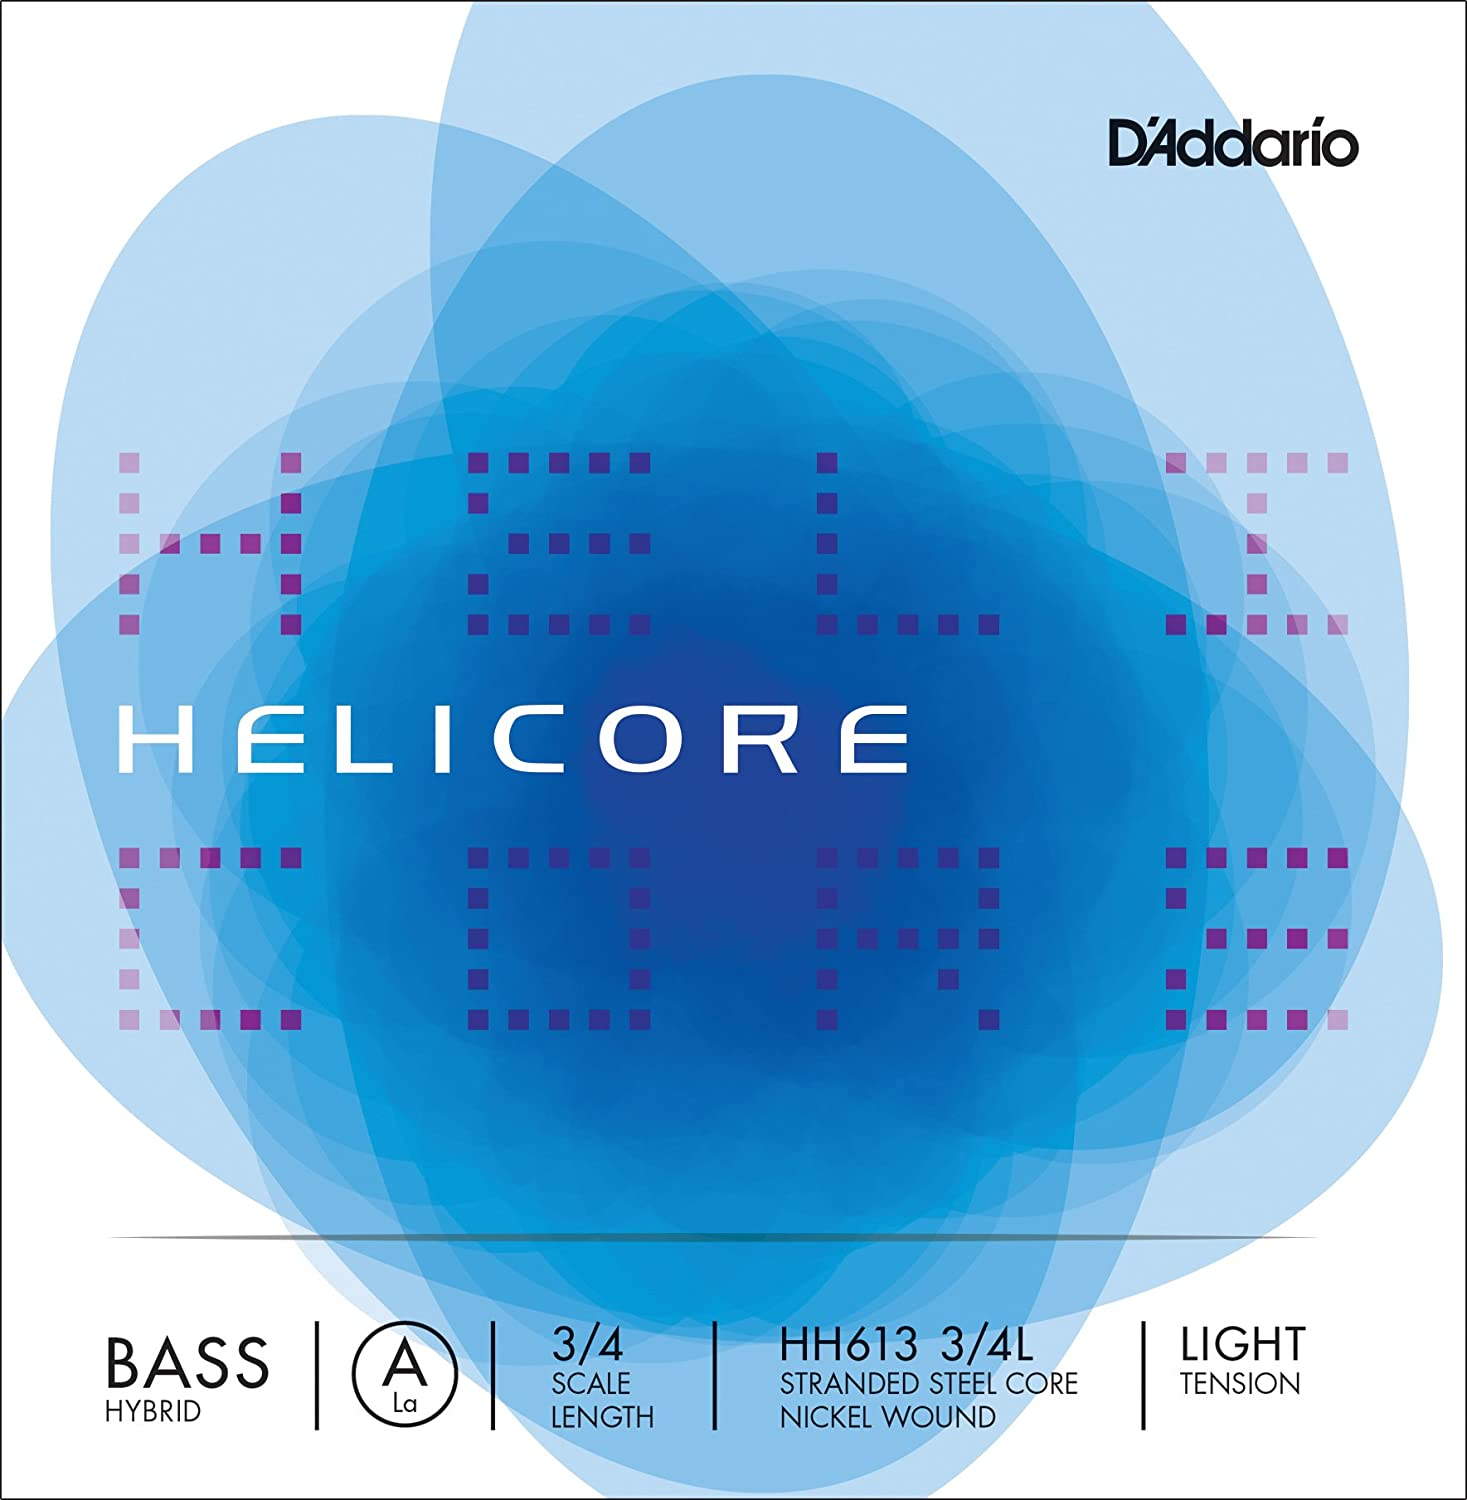 D'Addario Helicore Hybrid Bass Single A String, 3/4 Scale, Light Tension D' Addario HH613 3/4L